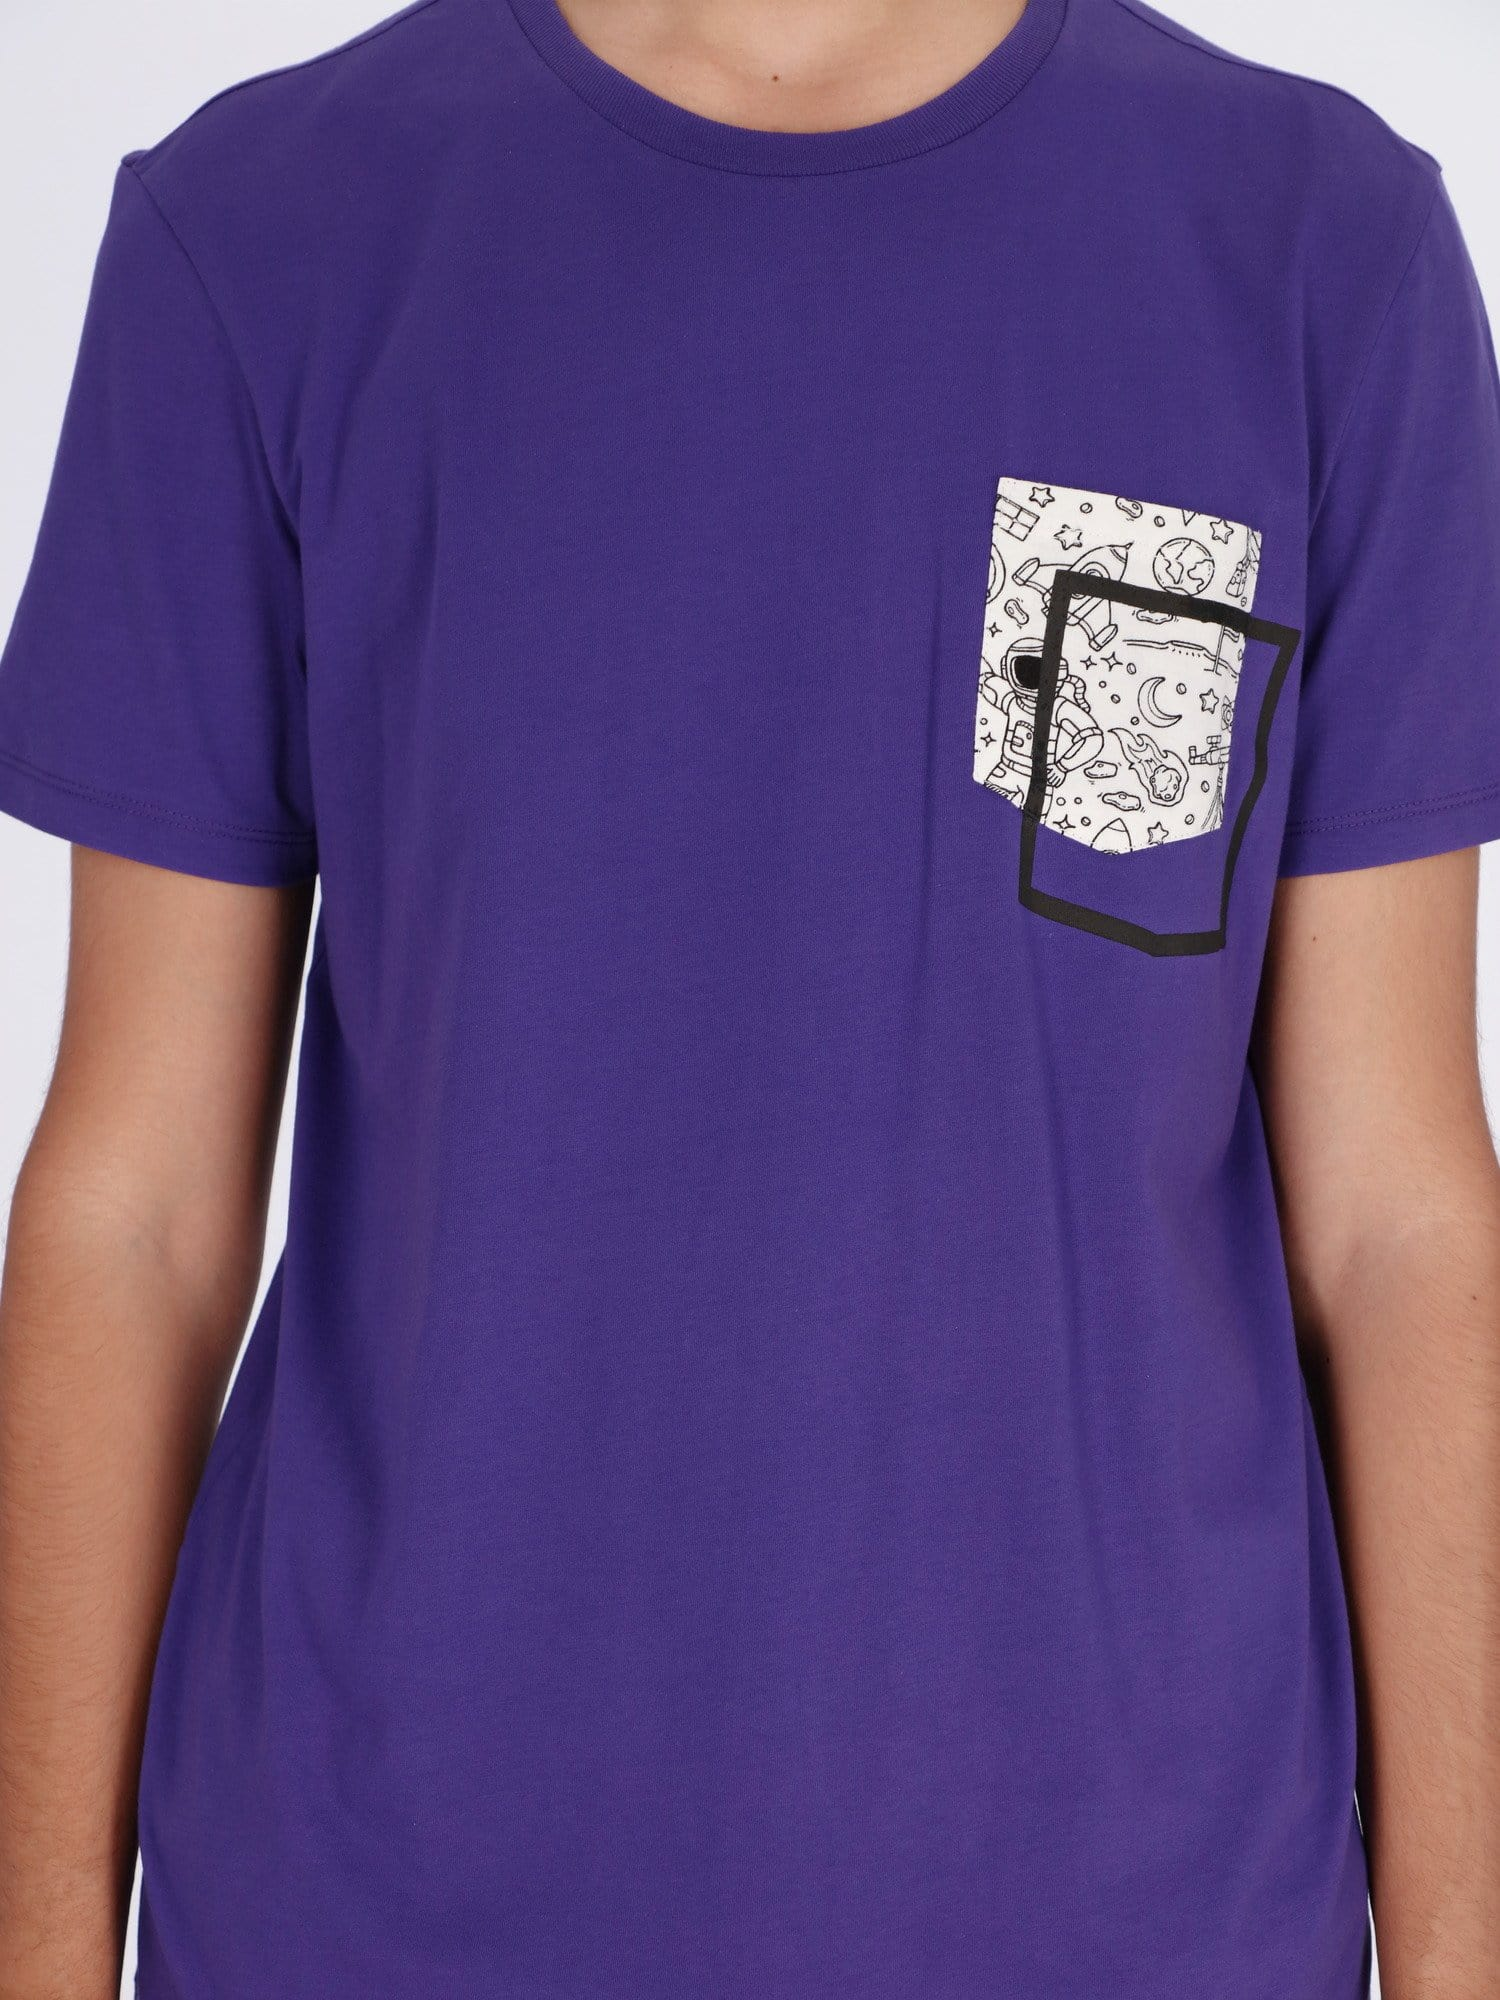 OR T-Shirts Dark Purple - V24 / S Short Sleeves T-shirt with Illusion Printed Pocket